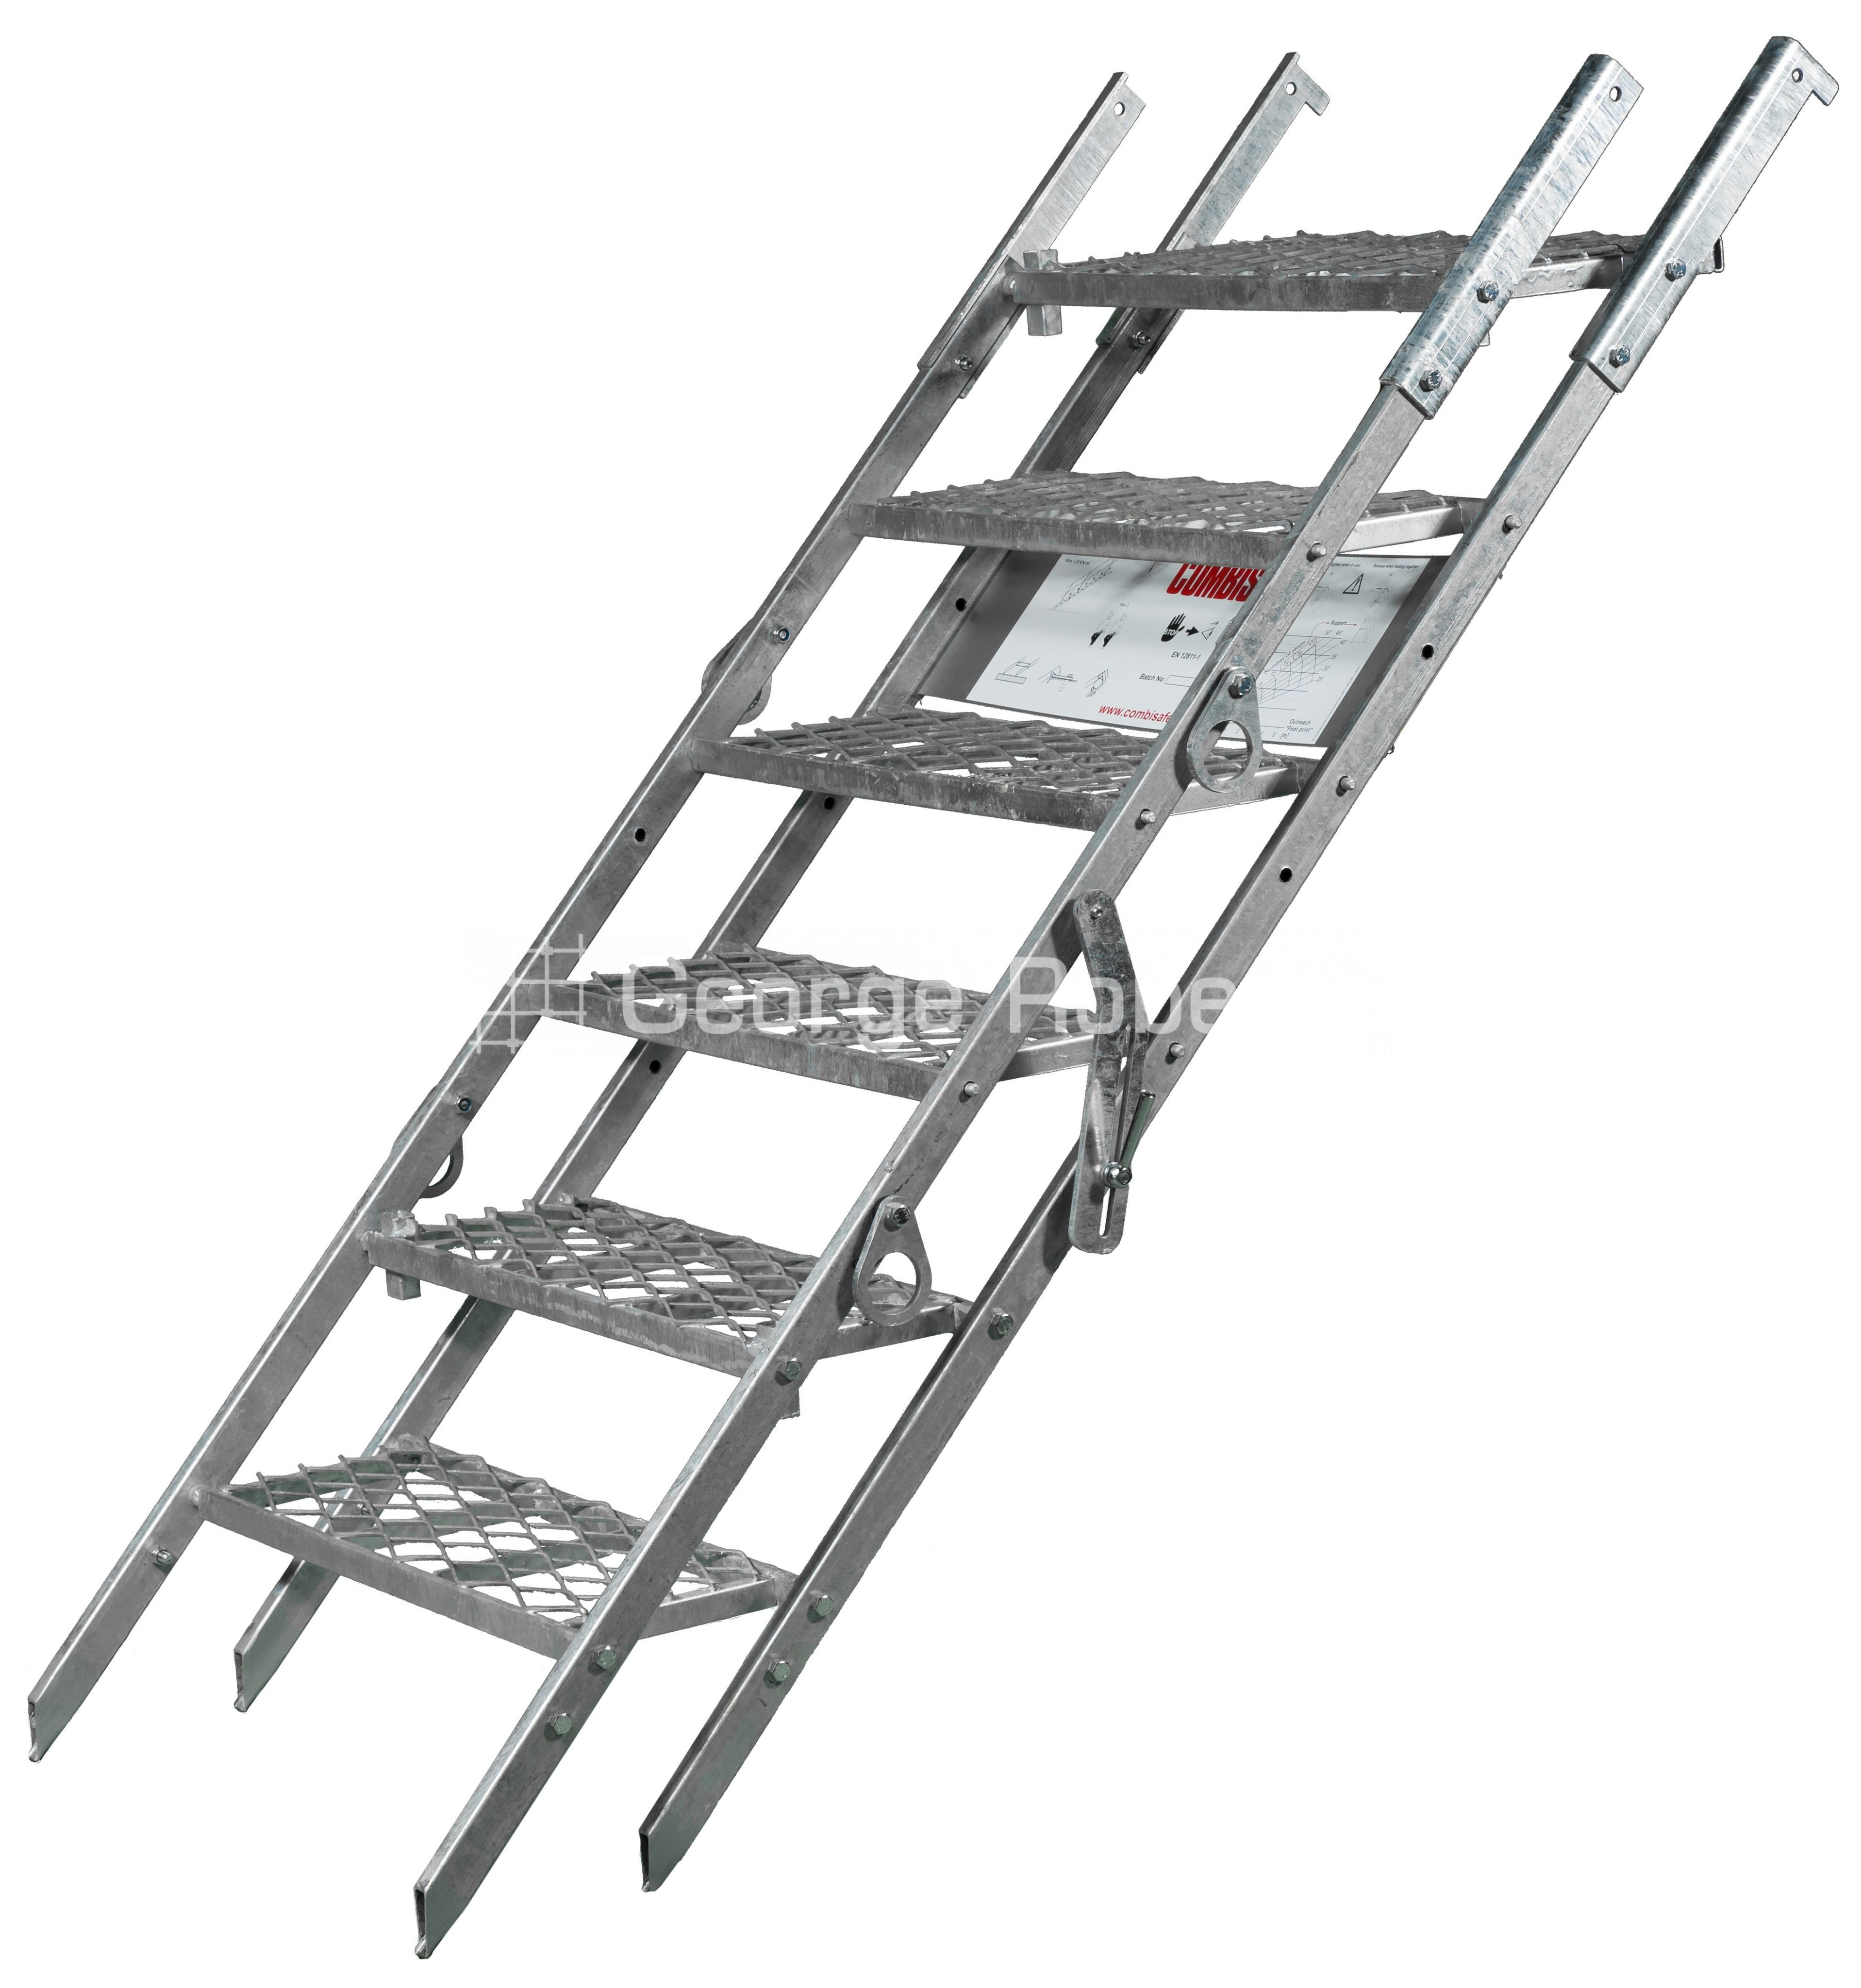 Scaffolding For Stairs : Combisafe site stair george roberts scaffolding